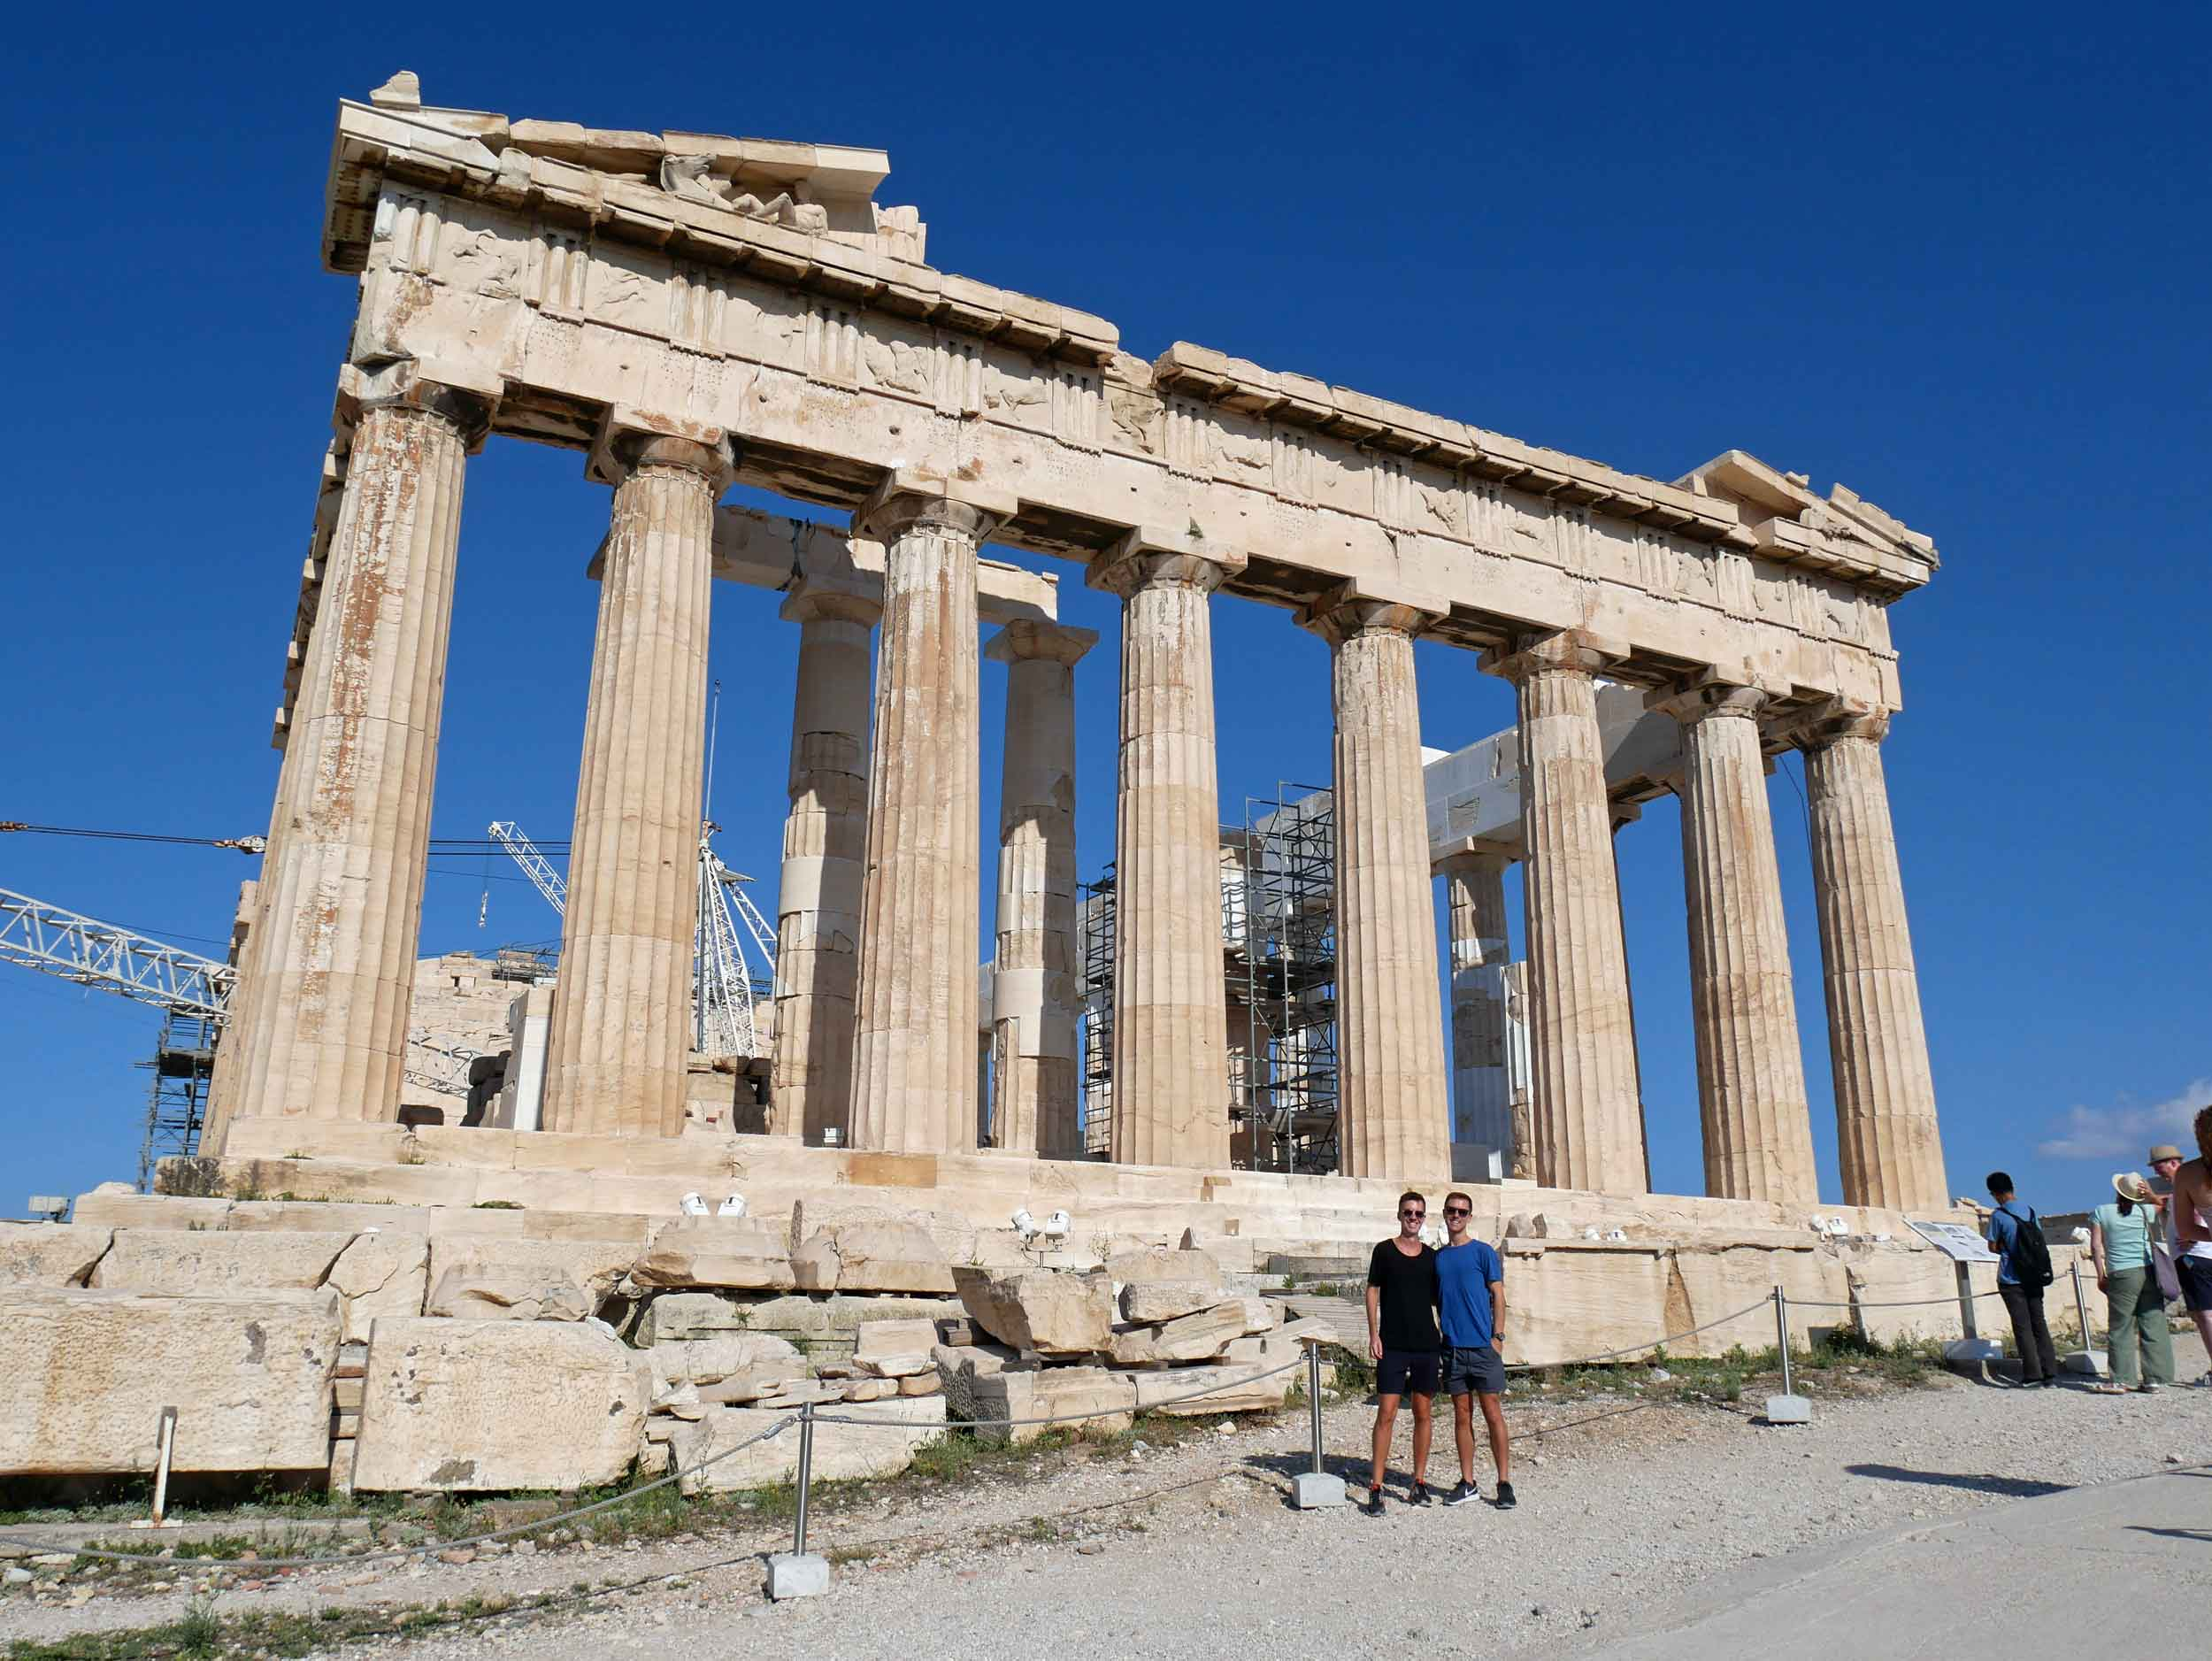 The Parthenon's massive foundations were made of limestone while its columns were made of Pentelic marble.